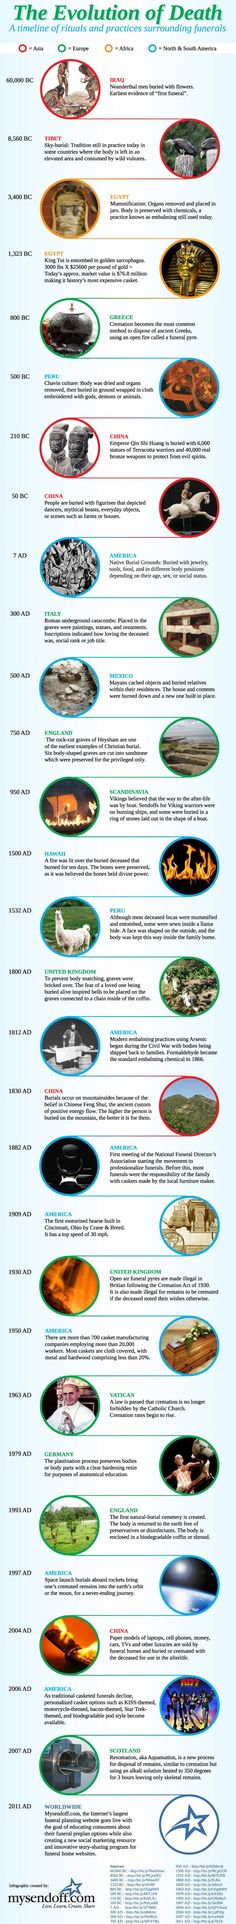 infographic on evolution of death rituals throughout history